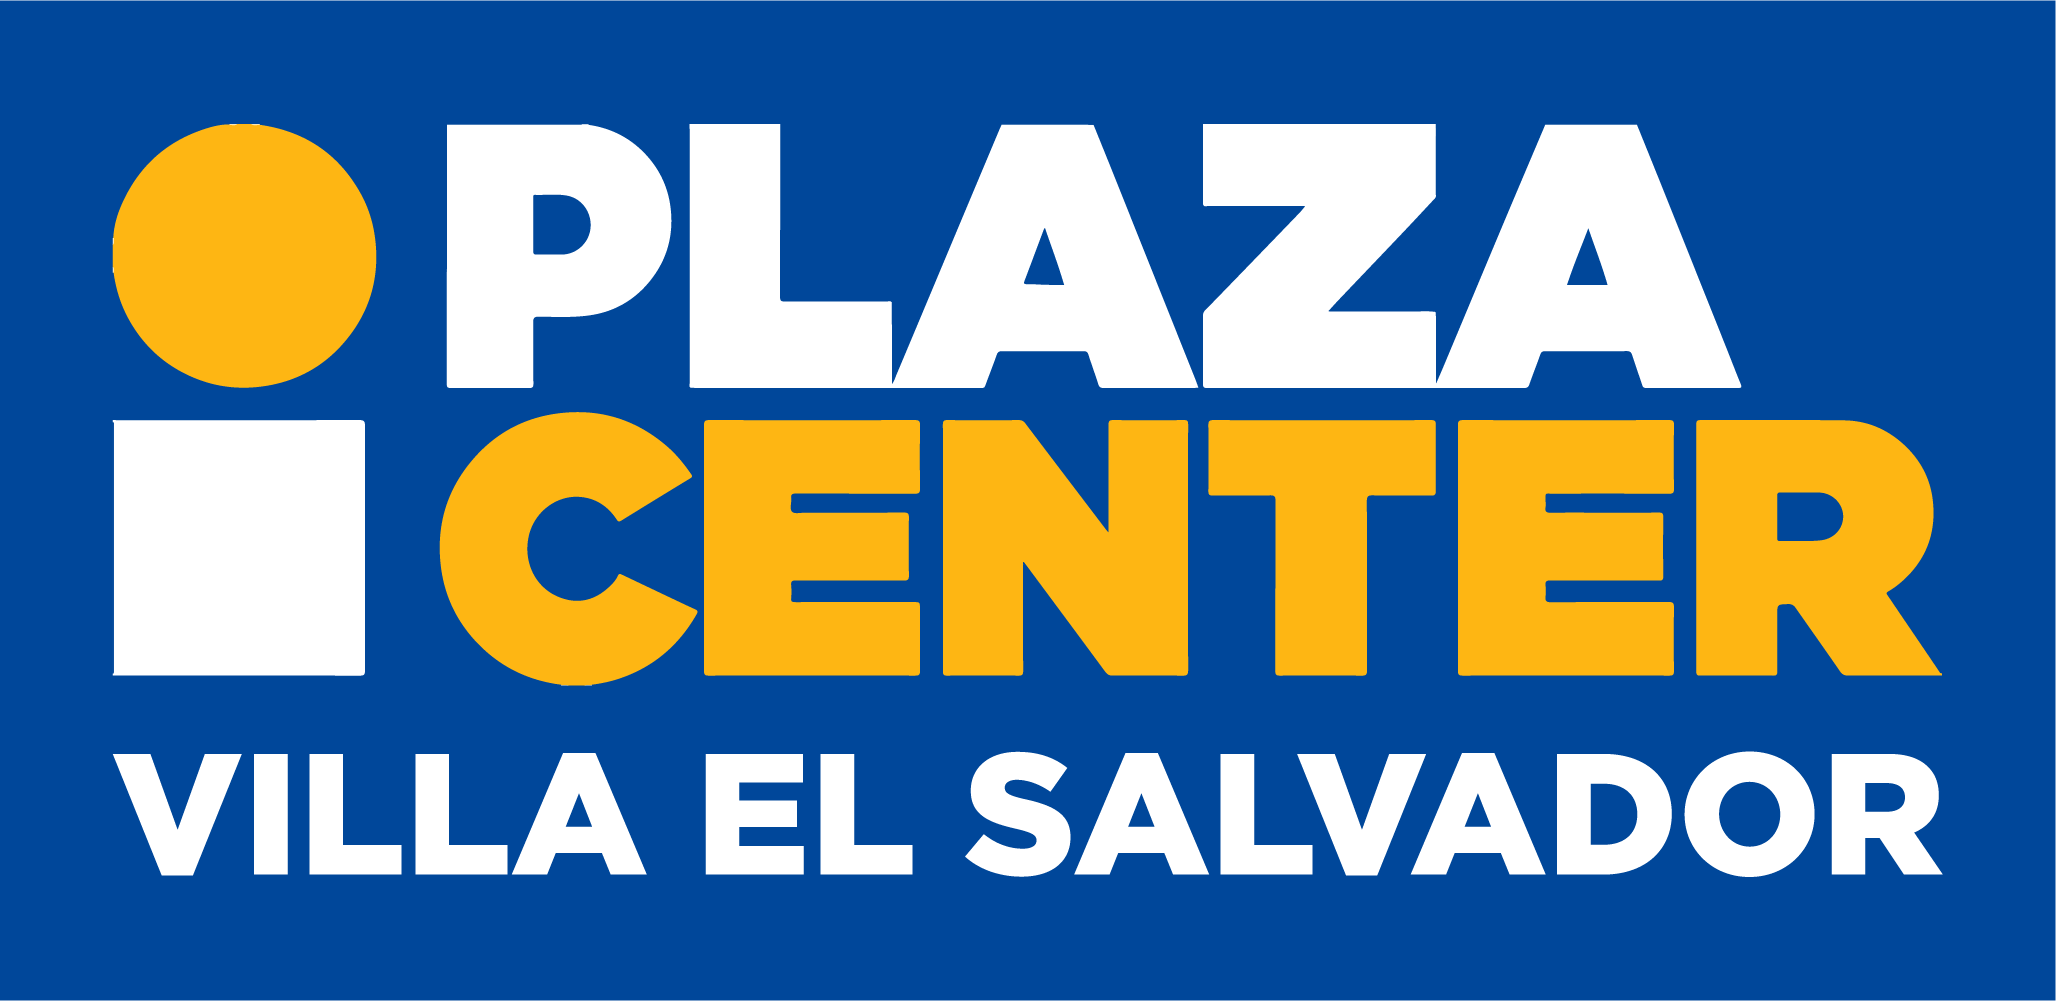 Plaza Center Villa El Salvador